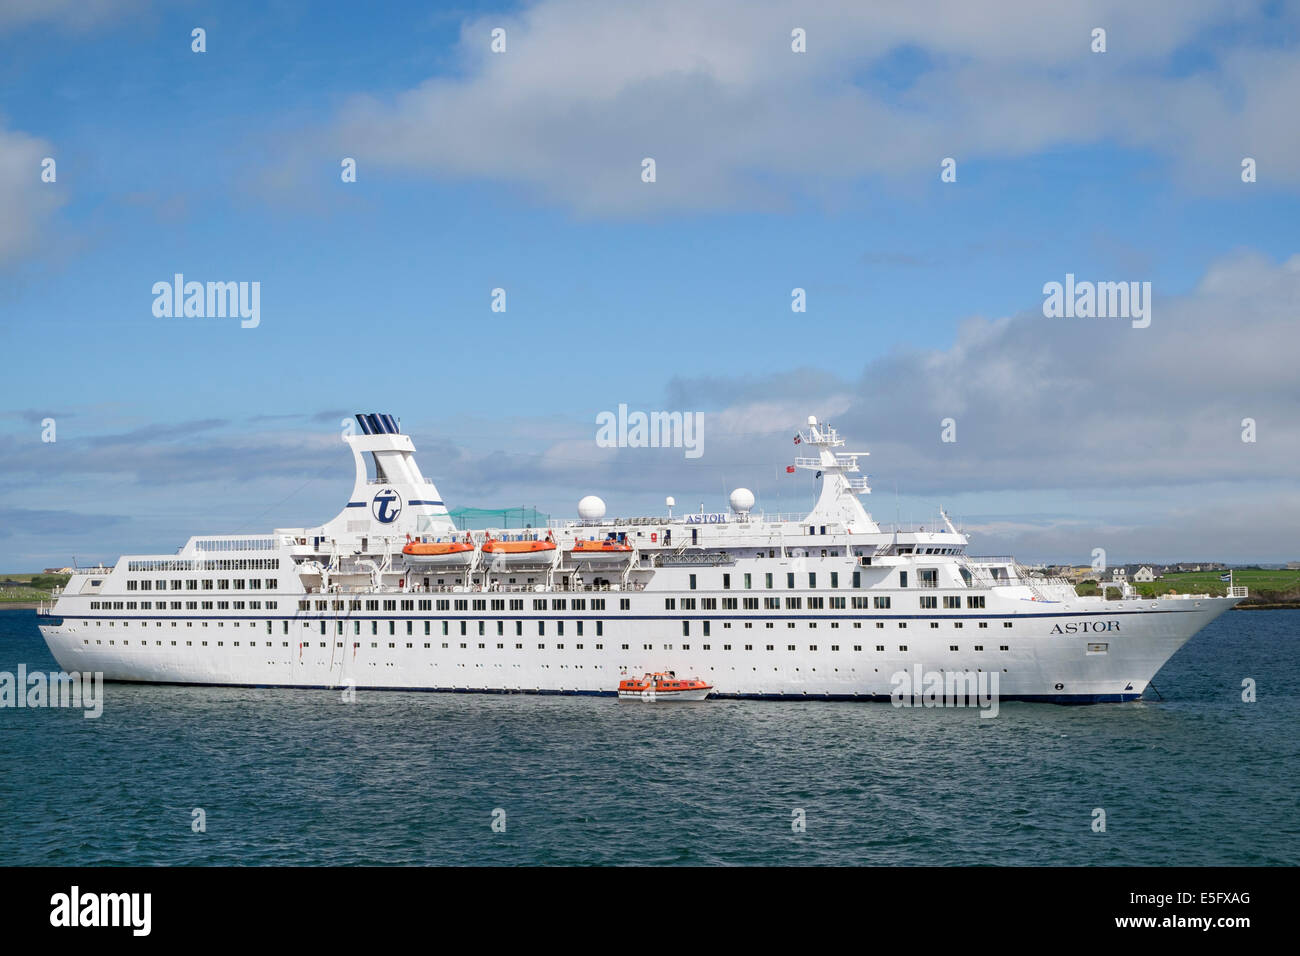 Large cruise liner ship MS Astor anchored at sea in Stornoway harbour, Isle of Lewis, Outer Hebrides, Western Isles, - Stock Image